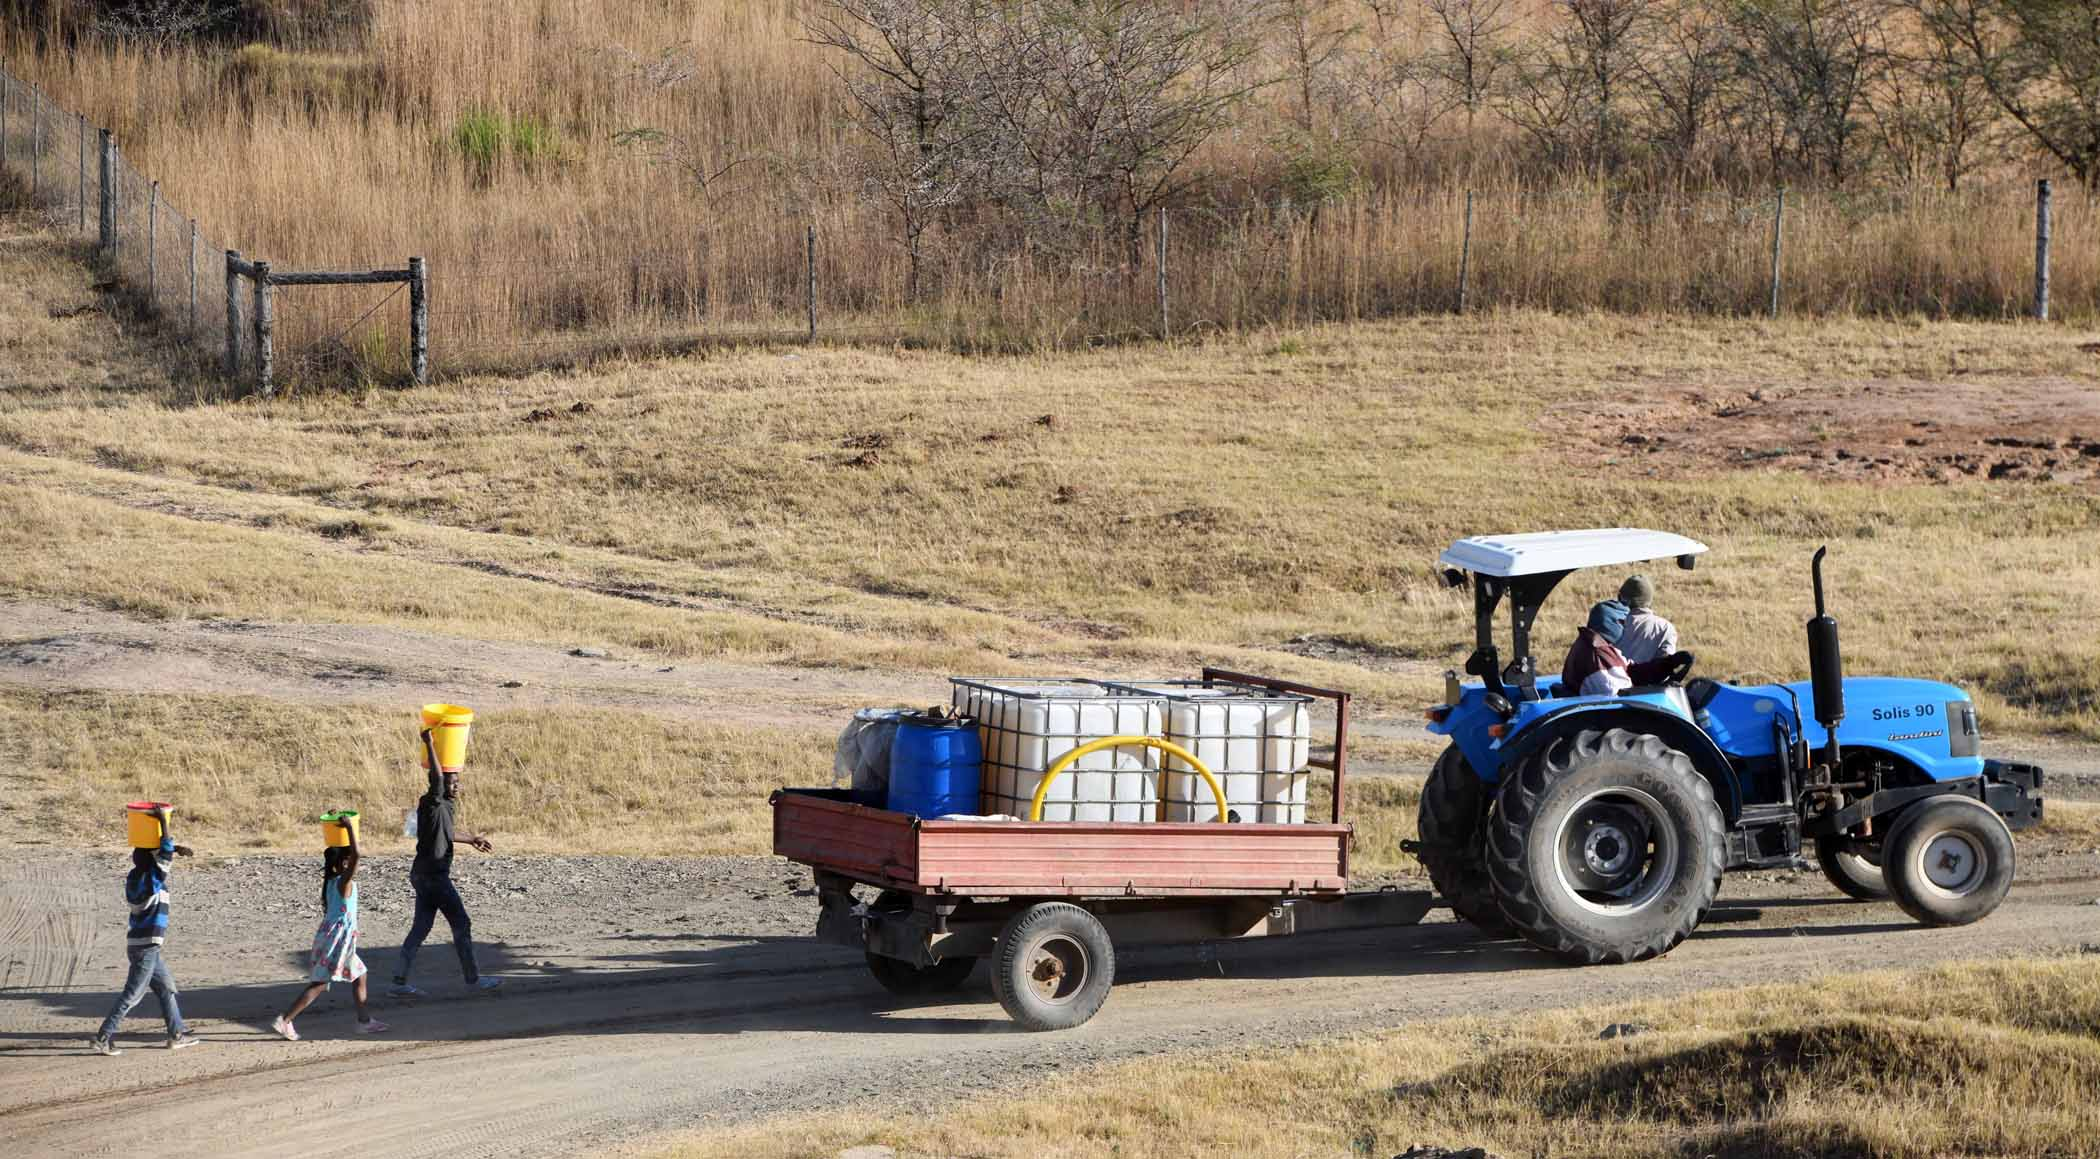 In some communities, residents hire trucks, tractors or bakkies to fetch water. PHOTO: Black Star/Spotlight